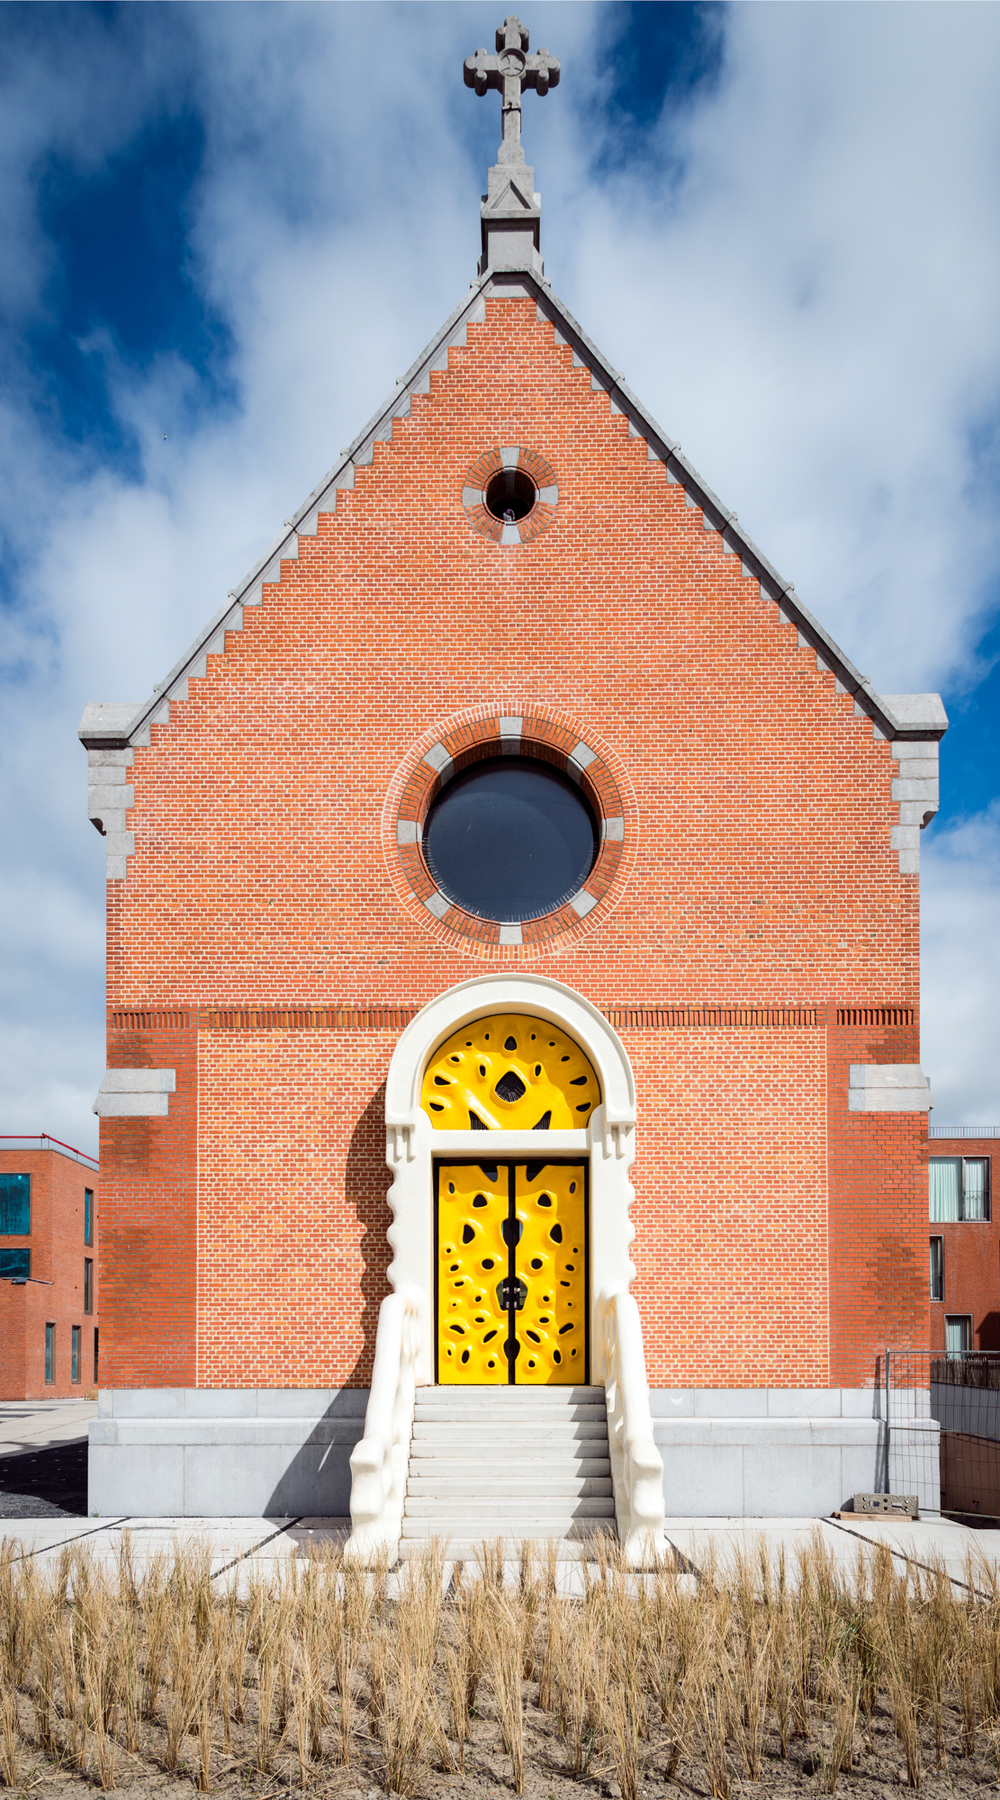 Imagrod-Nick-Ervinck-Studio-Yellow-Door-Sculpture-Church-1.jpg